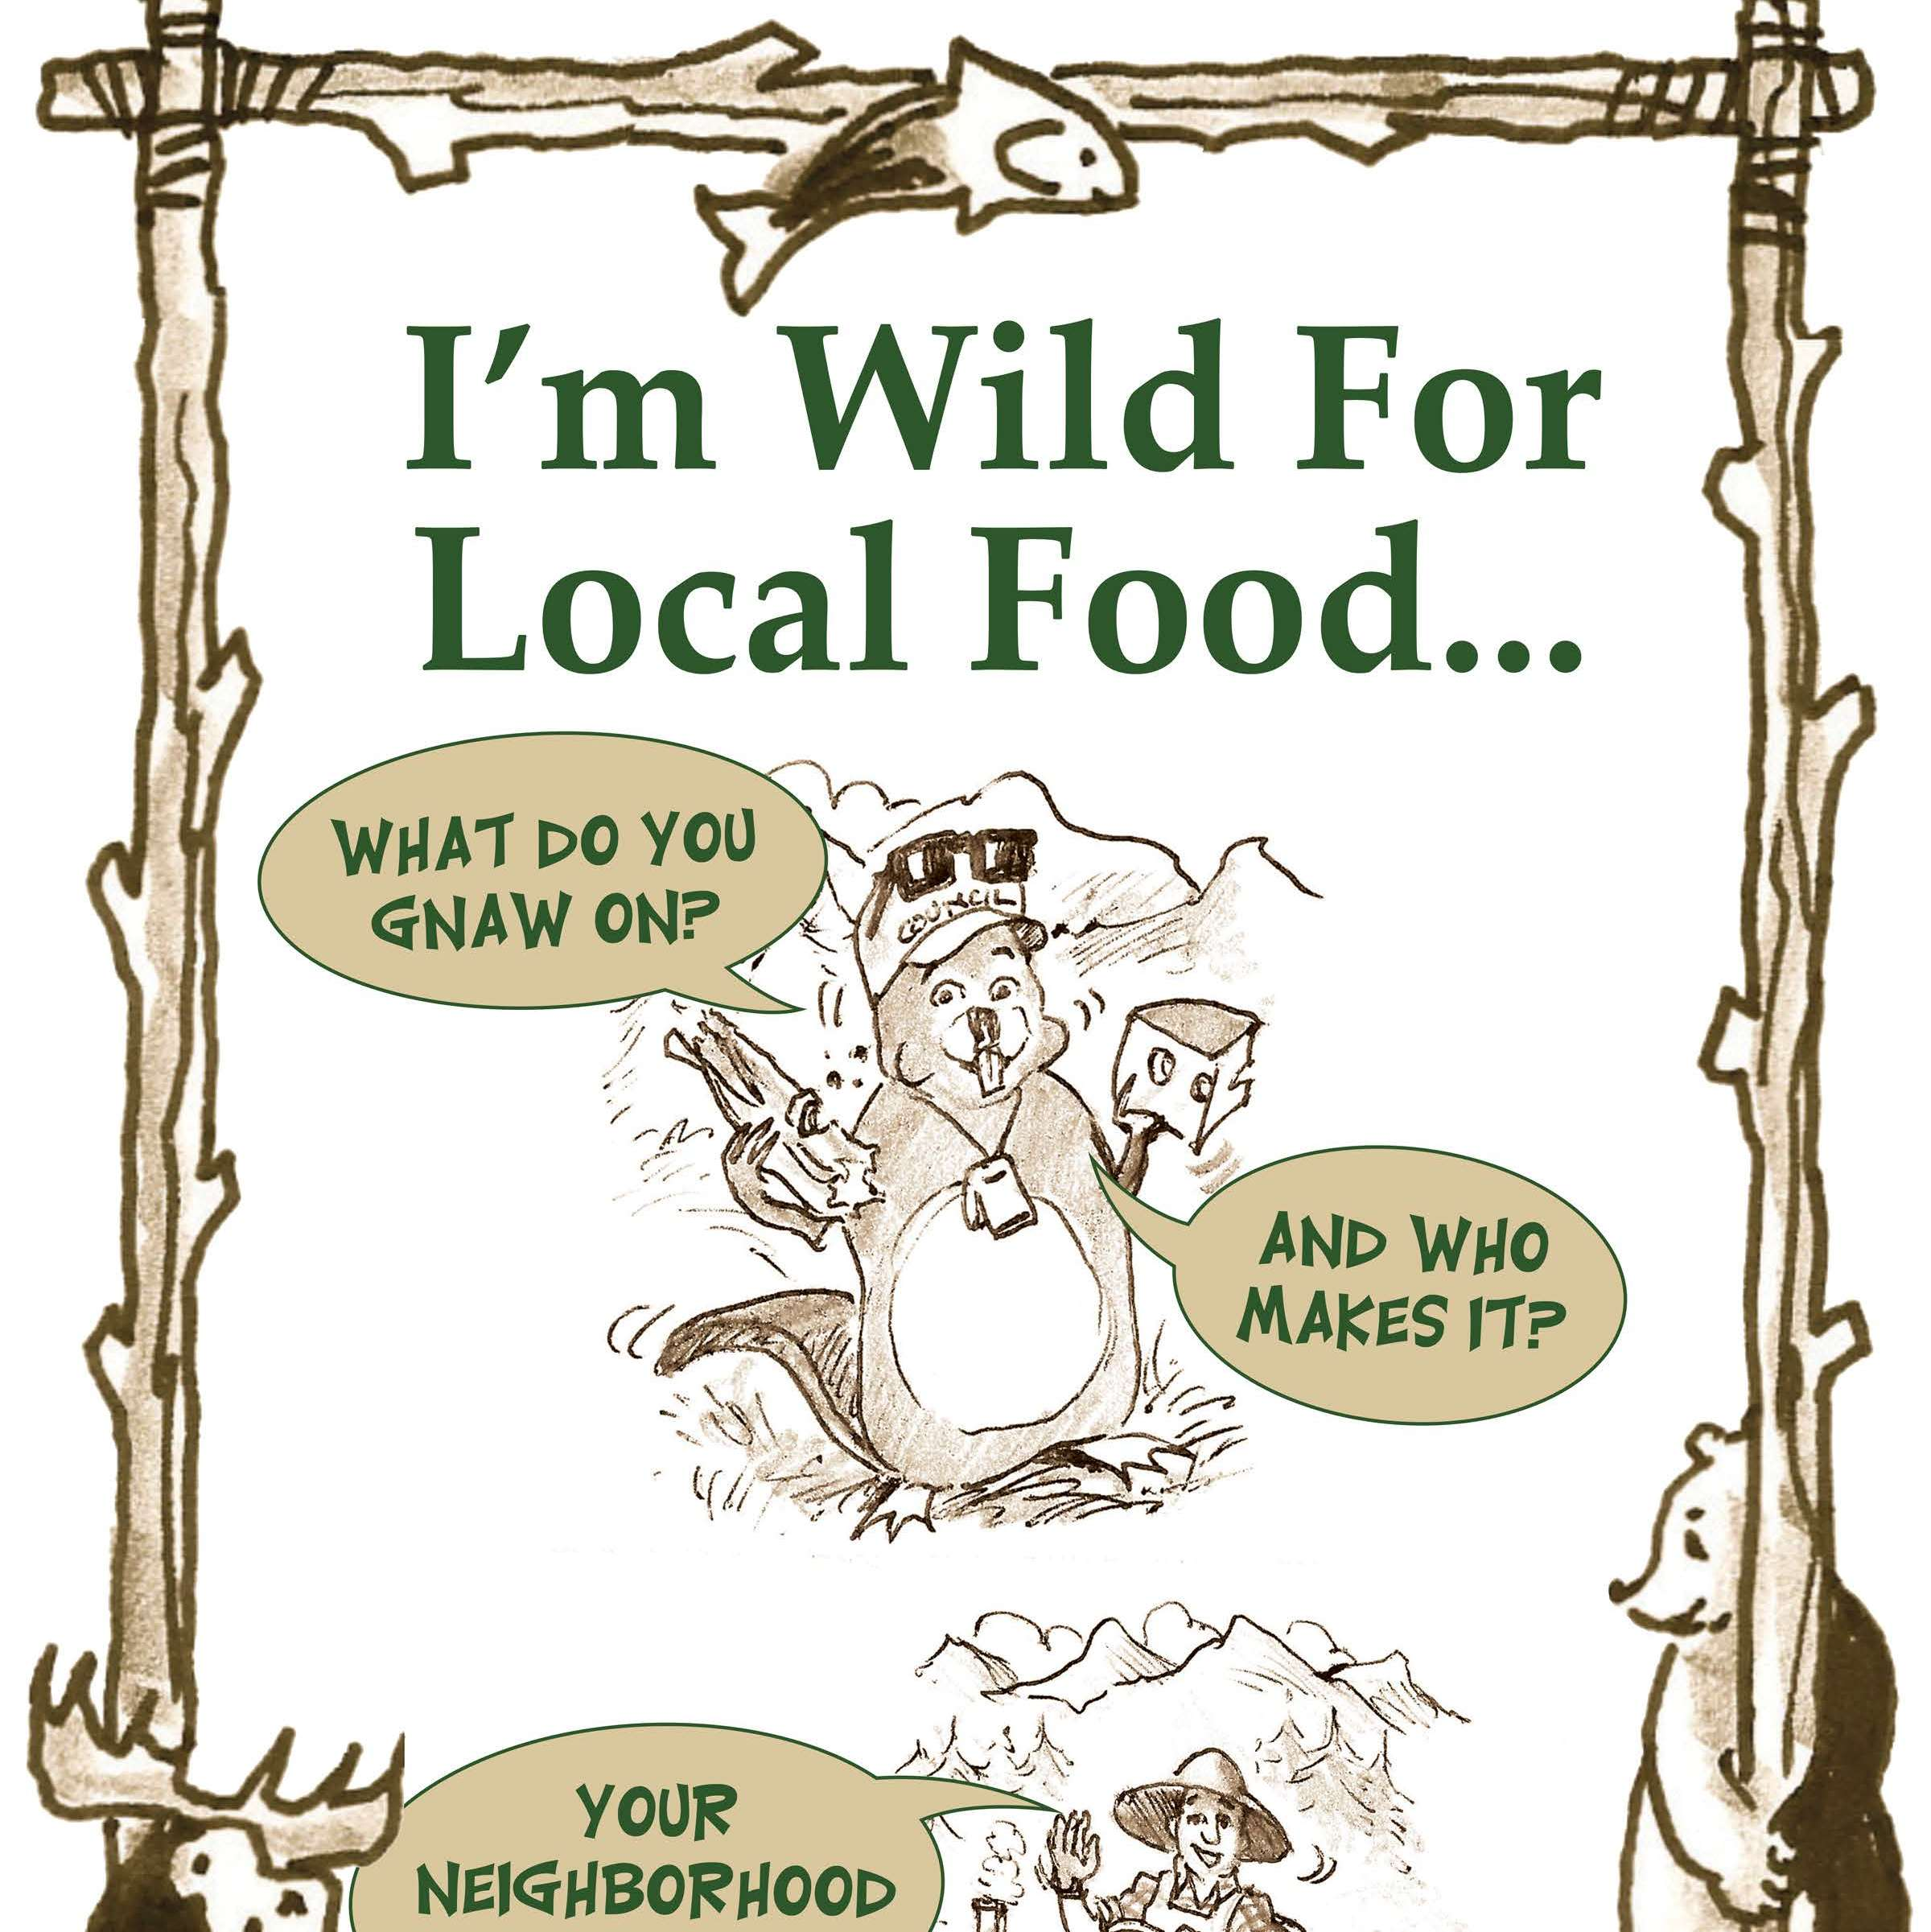 Council Helps Spread the Word - Eat Local!